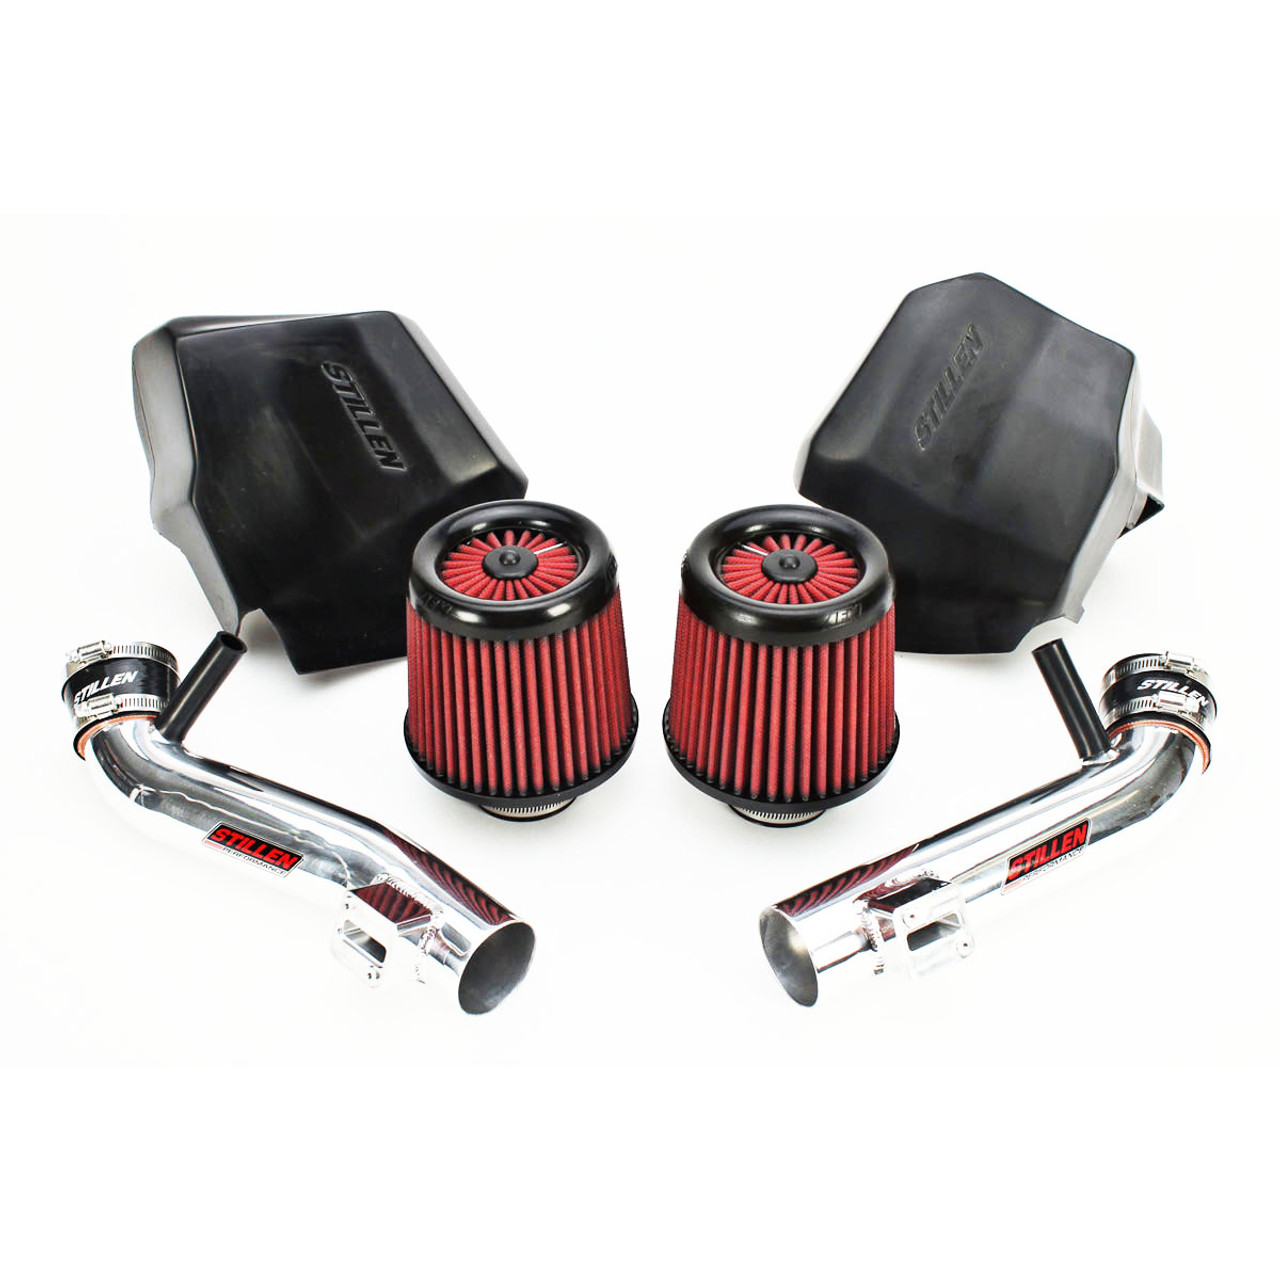 STILLEN (402851DF) GEN 2 HIGH FLOW, COLD AIR INTAKE SYSTEM WITH DRY AIR  FILTER + HEAT SHIELD, NISSAN 370Z (2009-18) VQ37VHR ENGINE